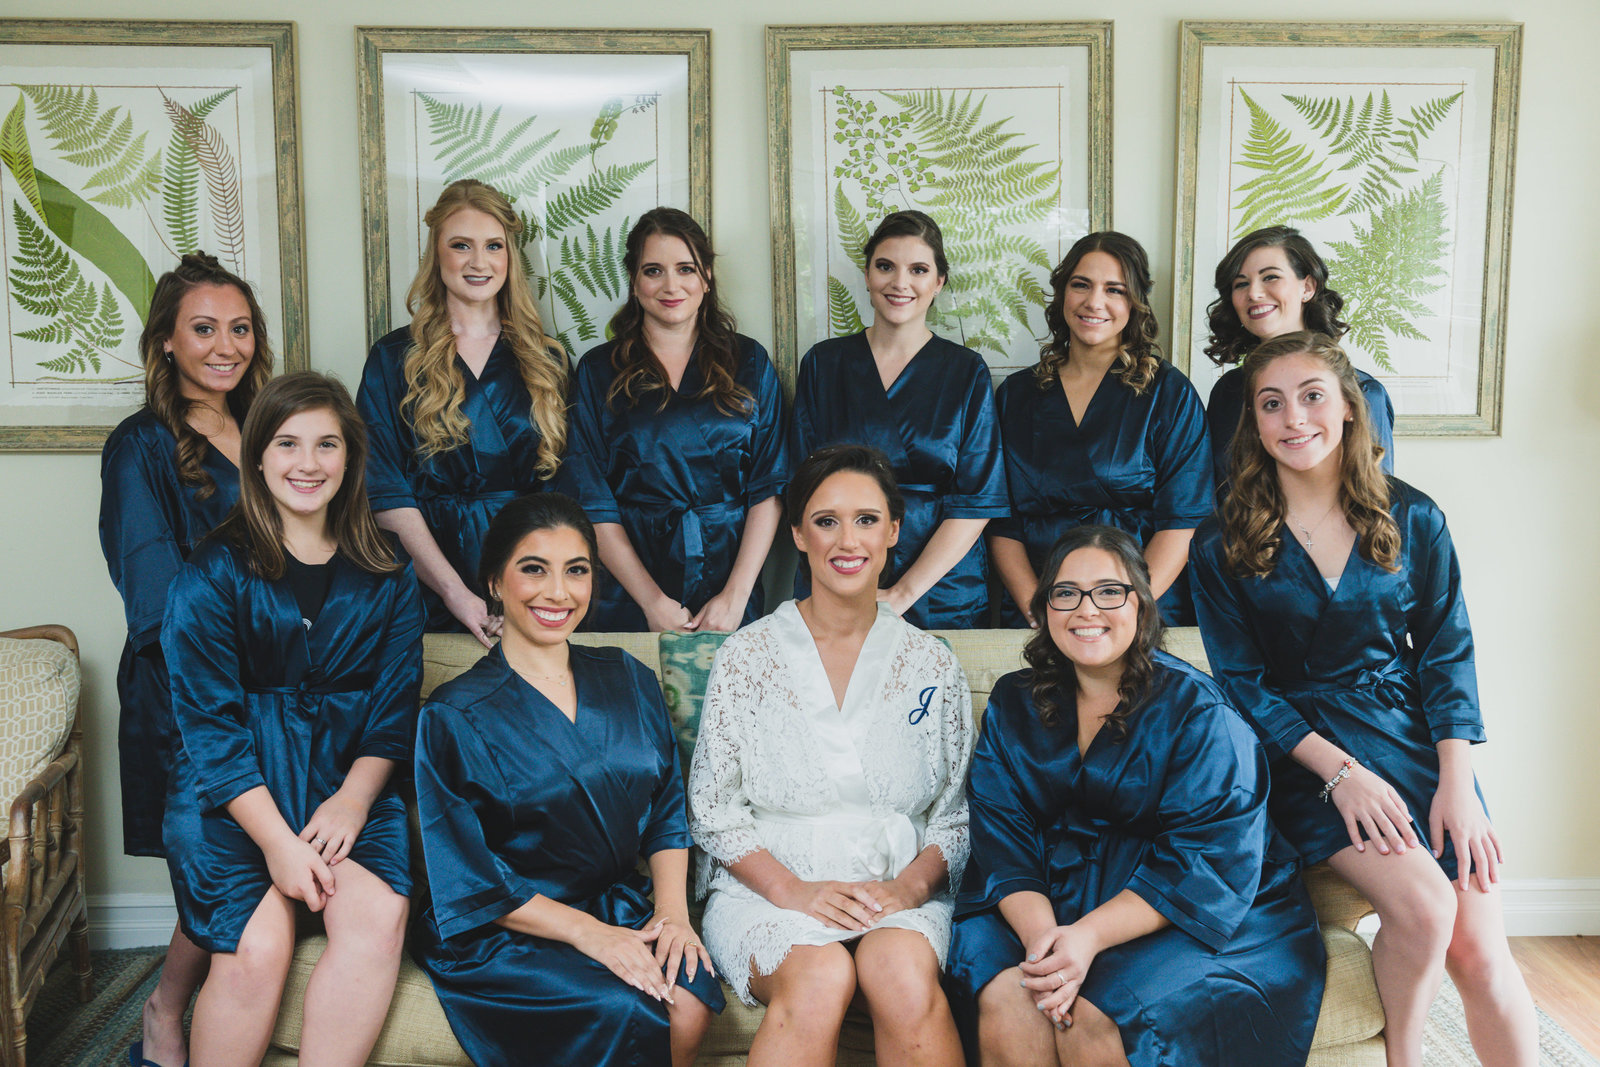 photo of bridesmaids with bride from wedding at Three Village Inn